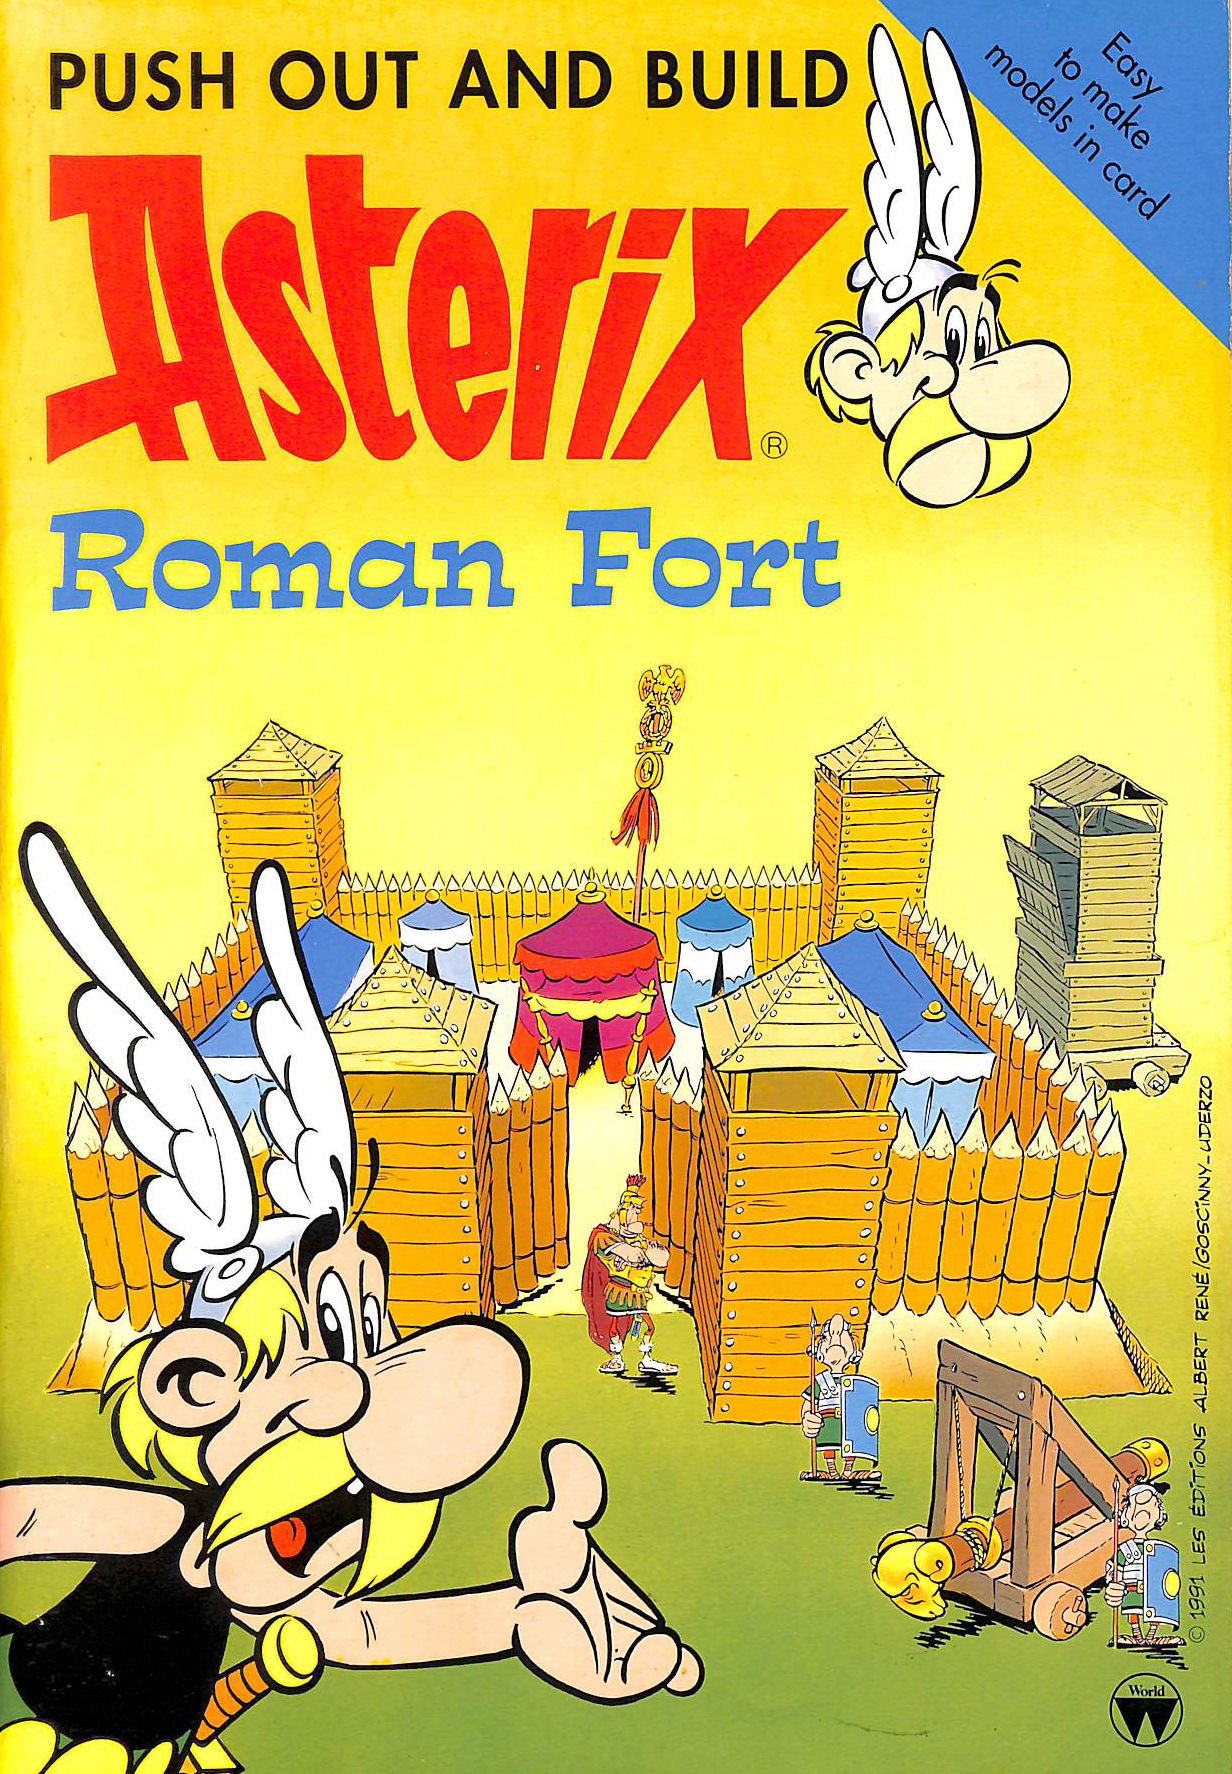 Image for Asterix Push Out and Build: Roman Fort (Asterix push out & build)